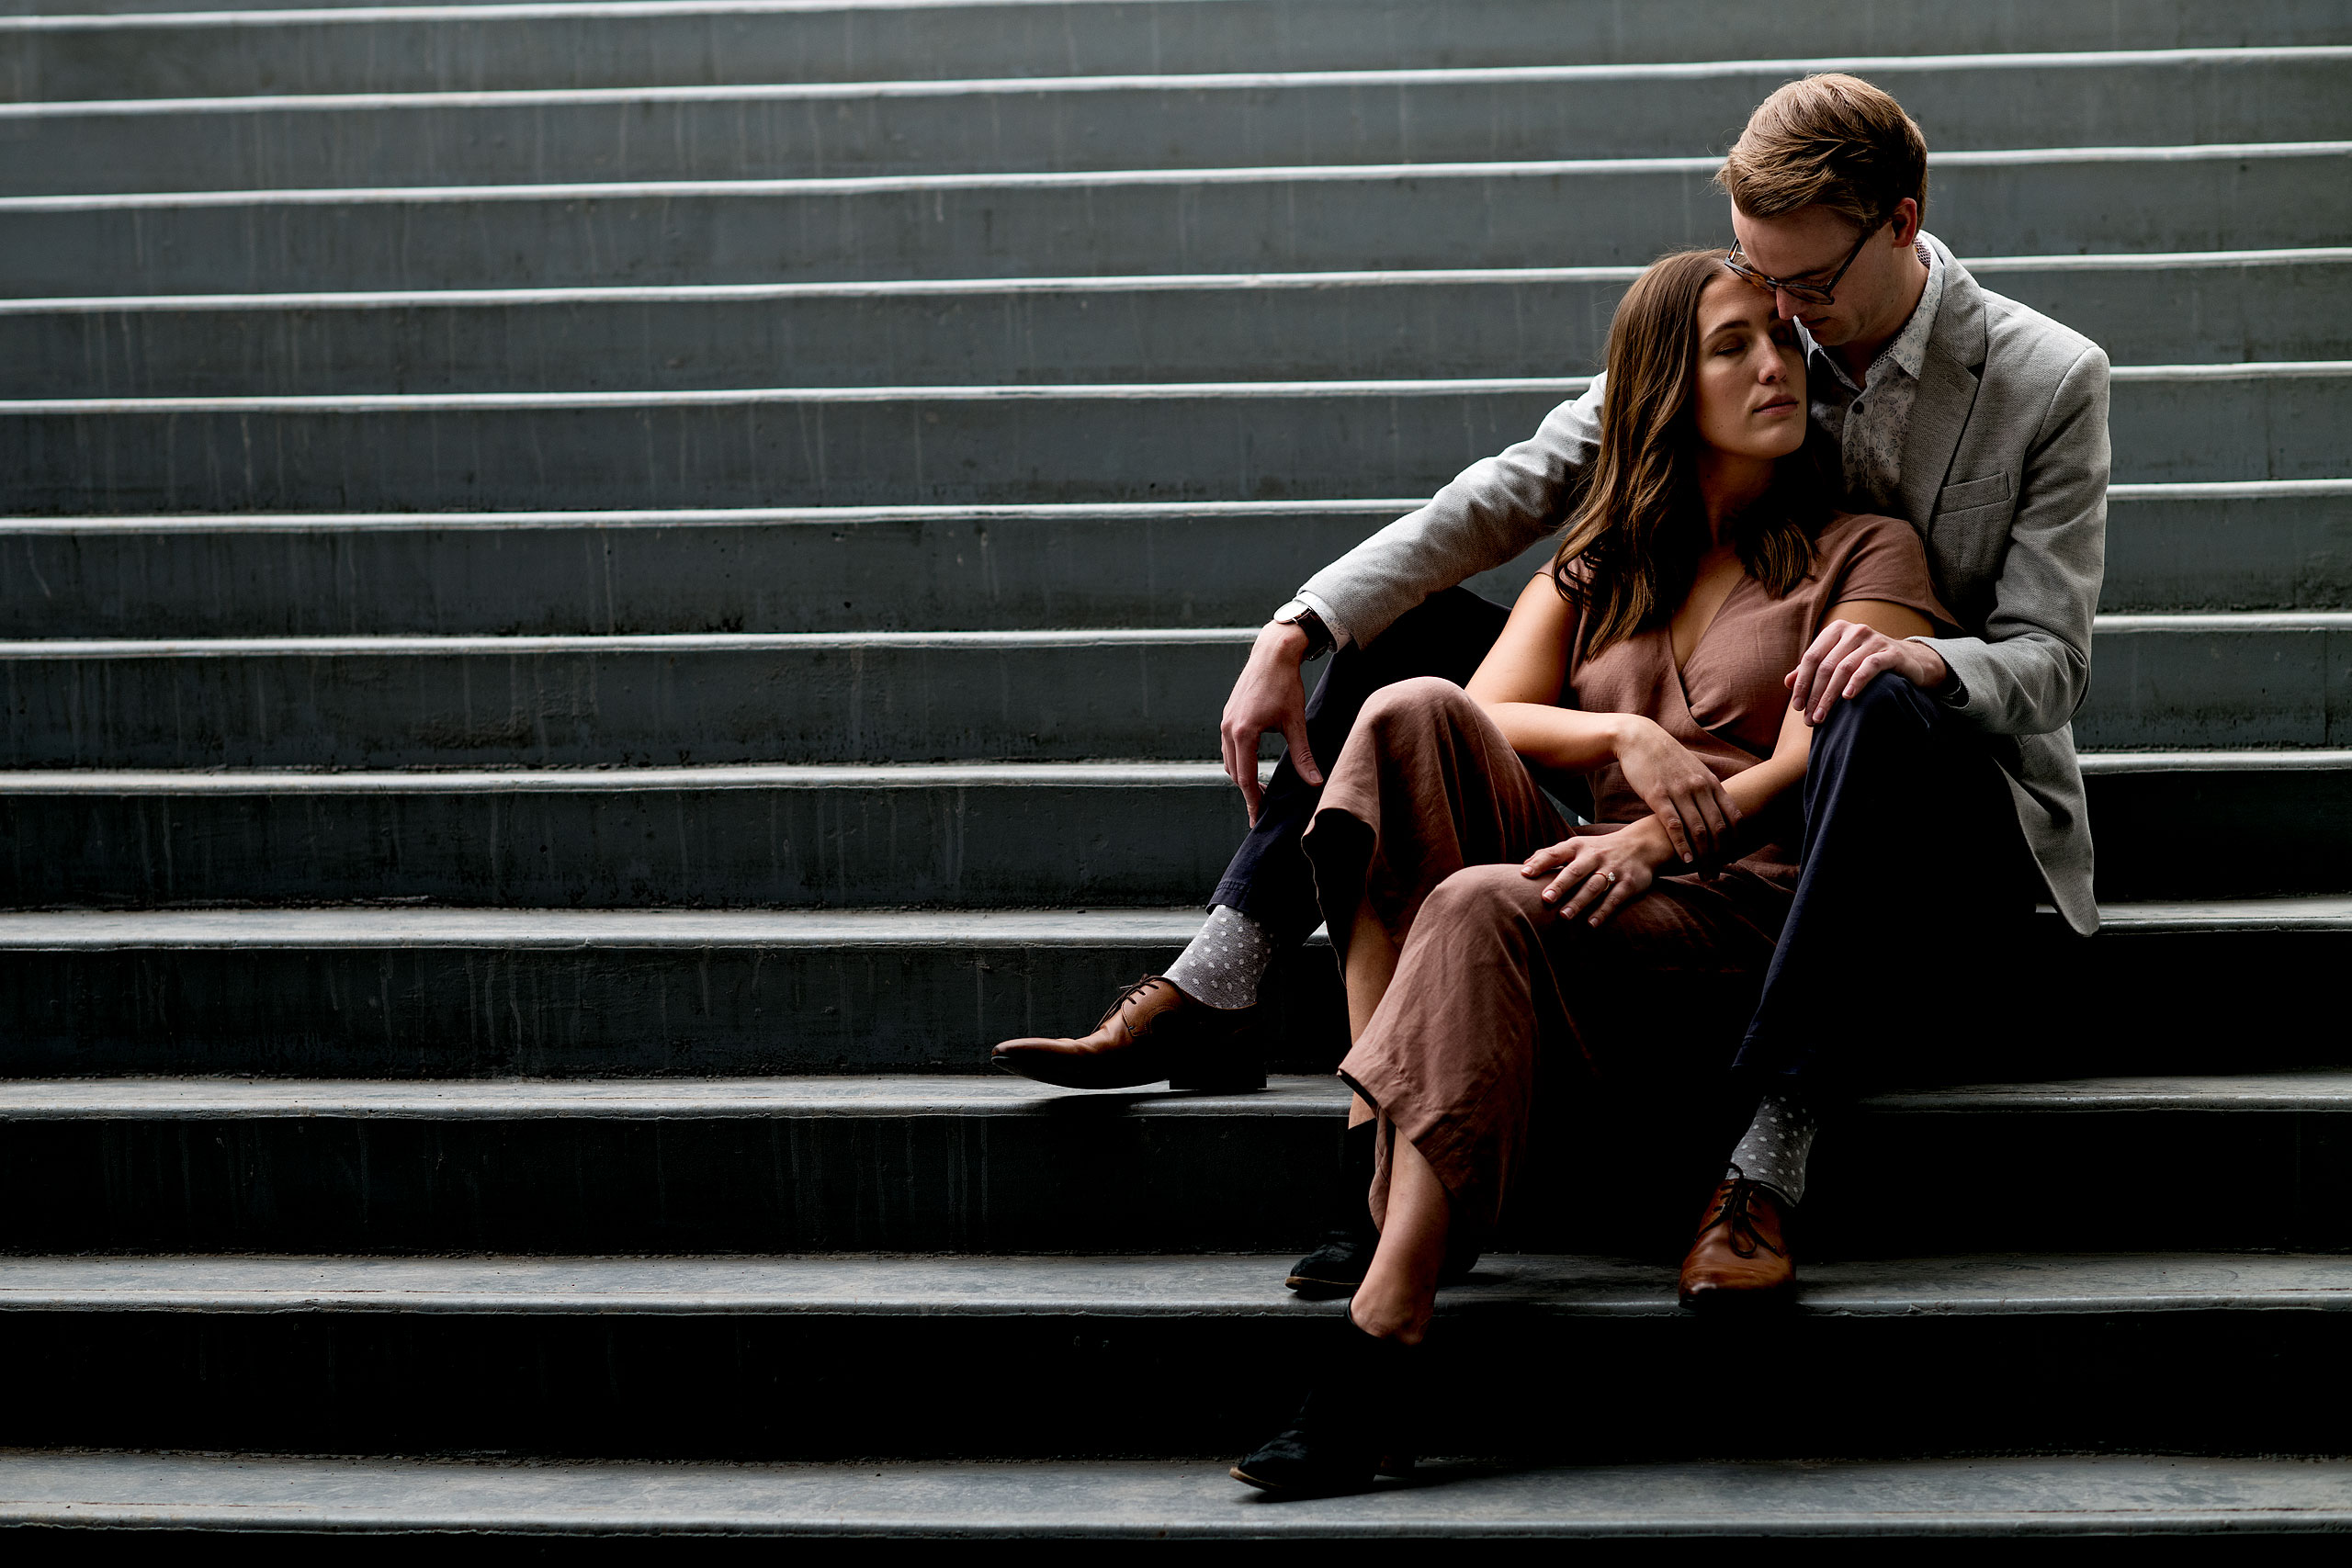 an engaged couple sitting on stairs holding each other by calgary engagement photographer sean leblanc